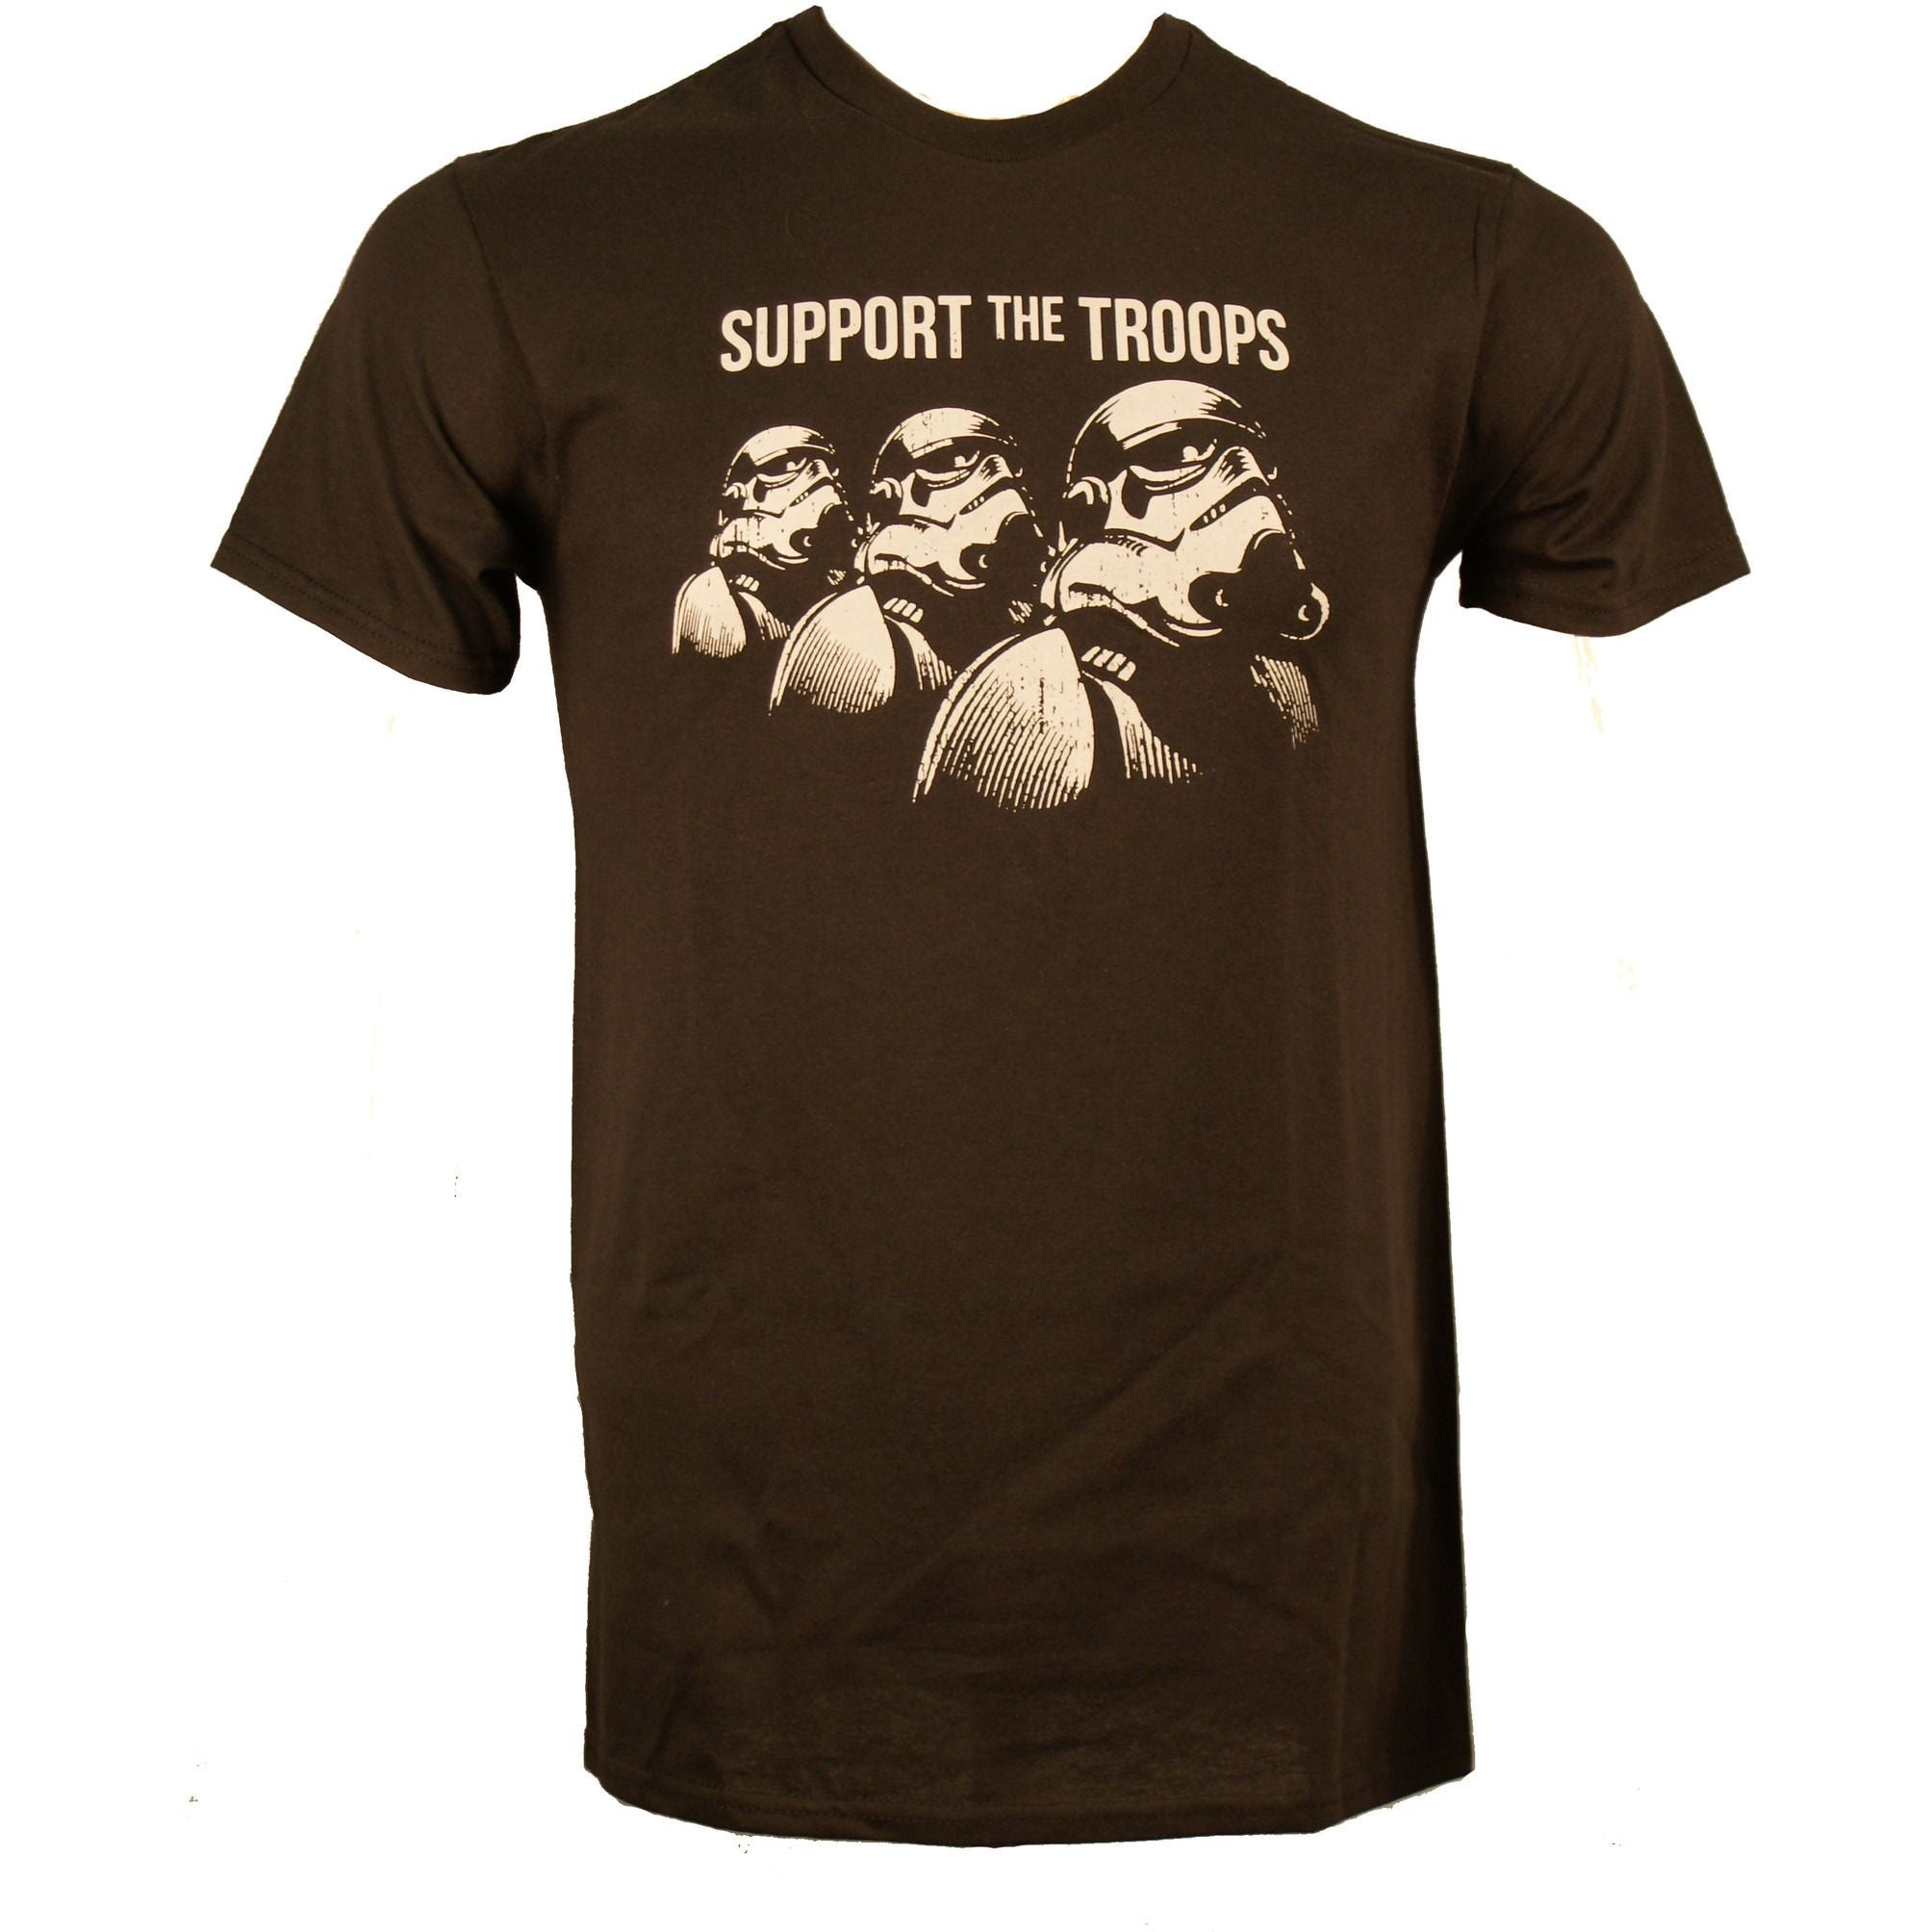 Support the Troops Men's Shirt Uncanny!